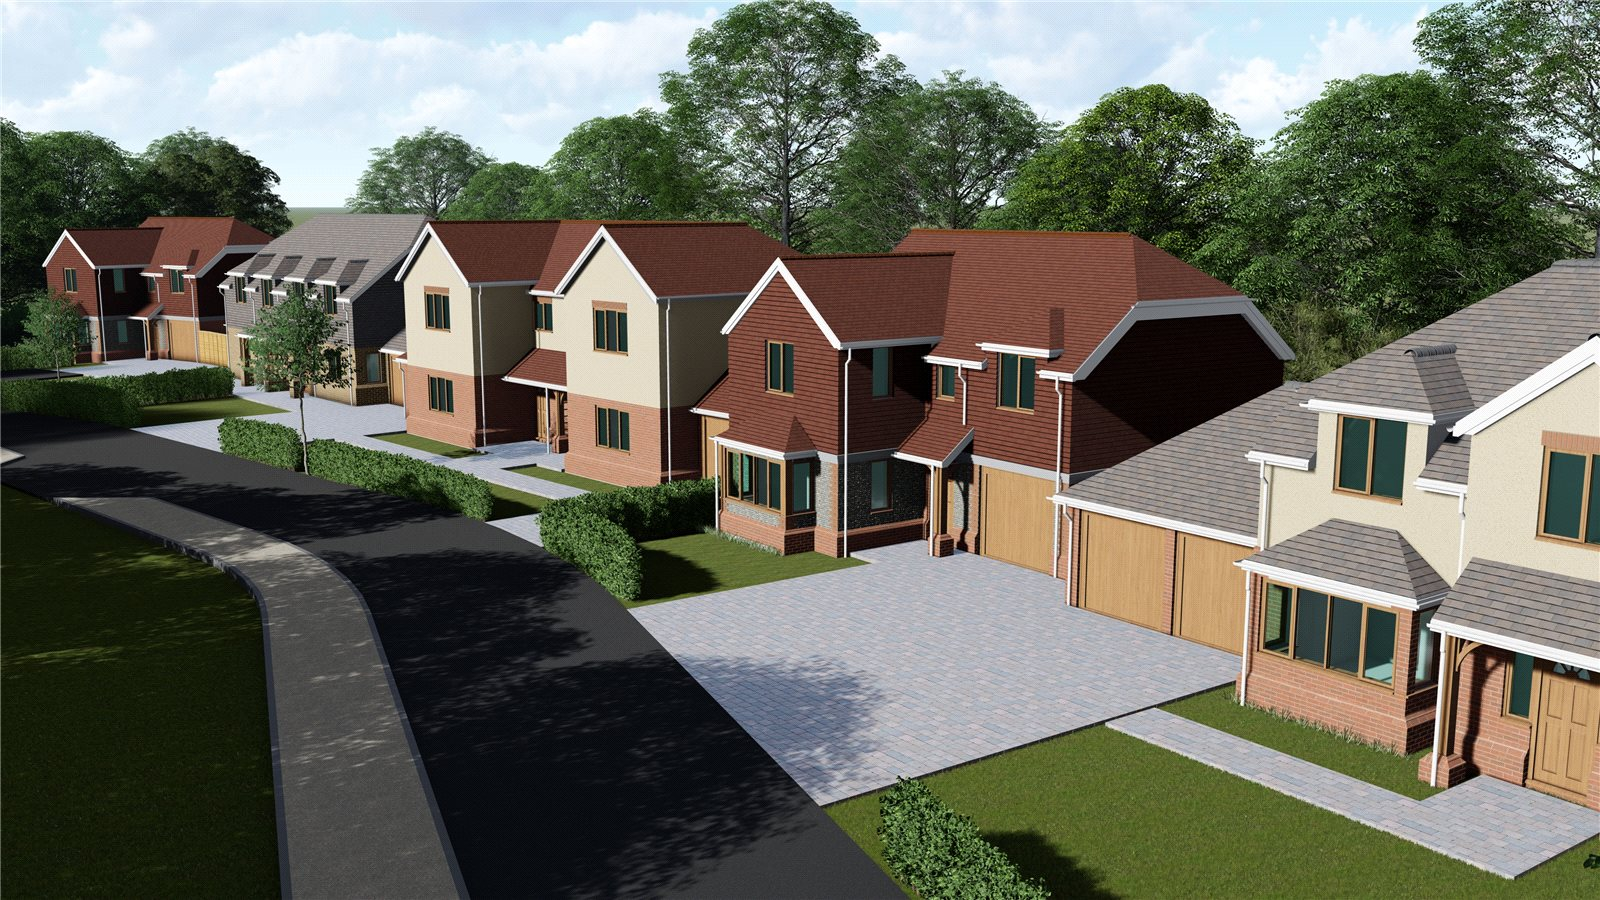 3 bed house for sale in Starlings View, Arundel Road, Angmering 3